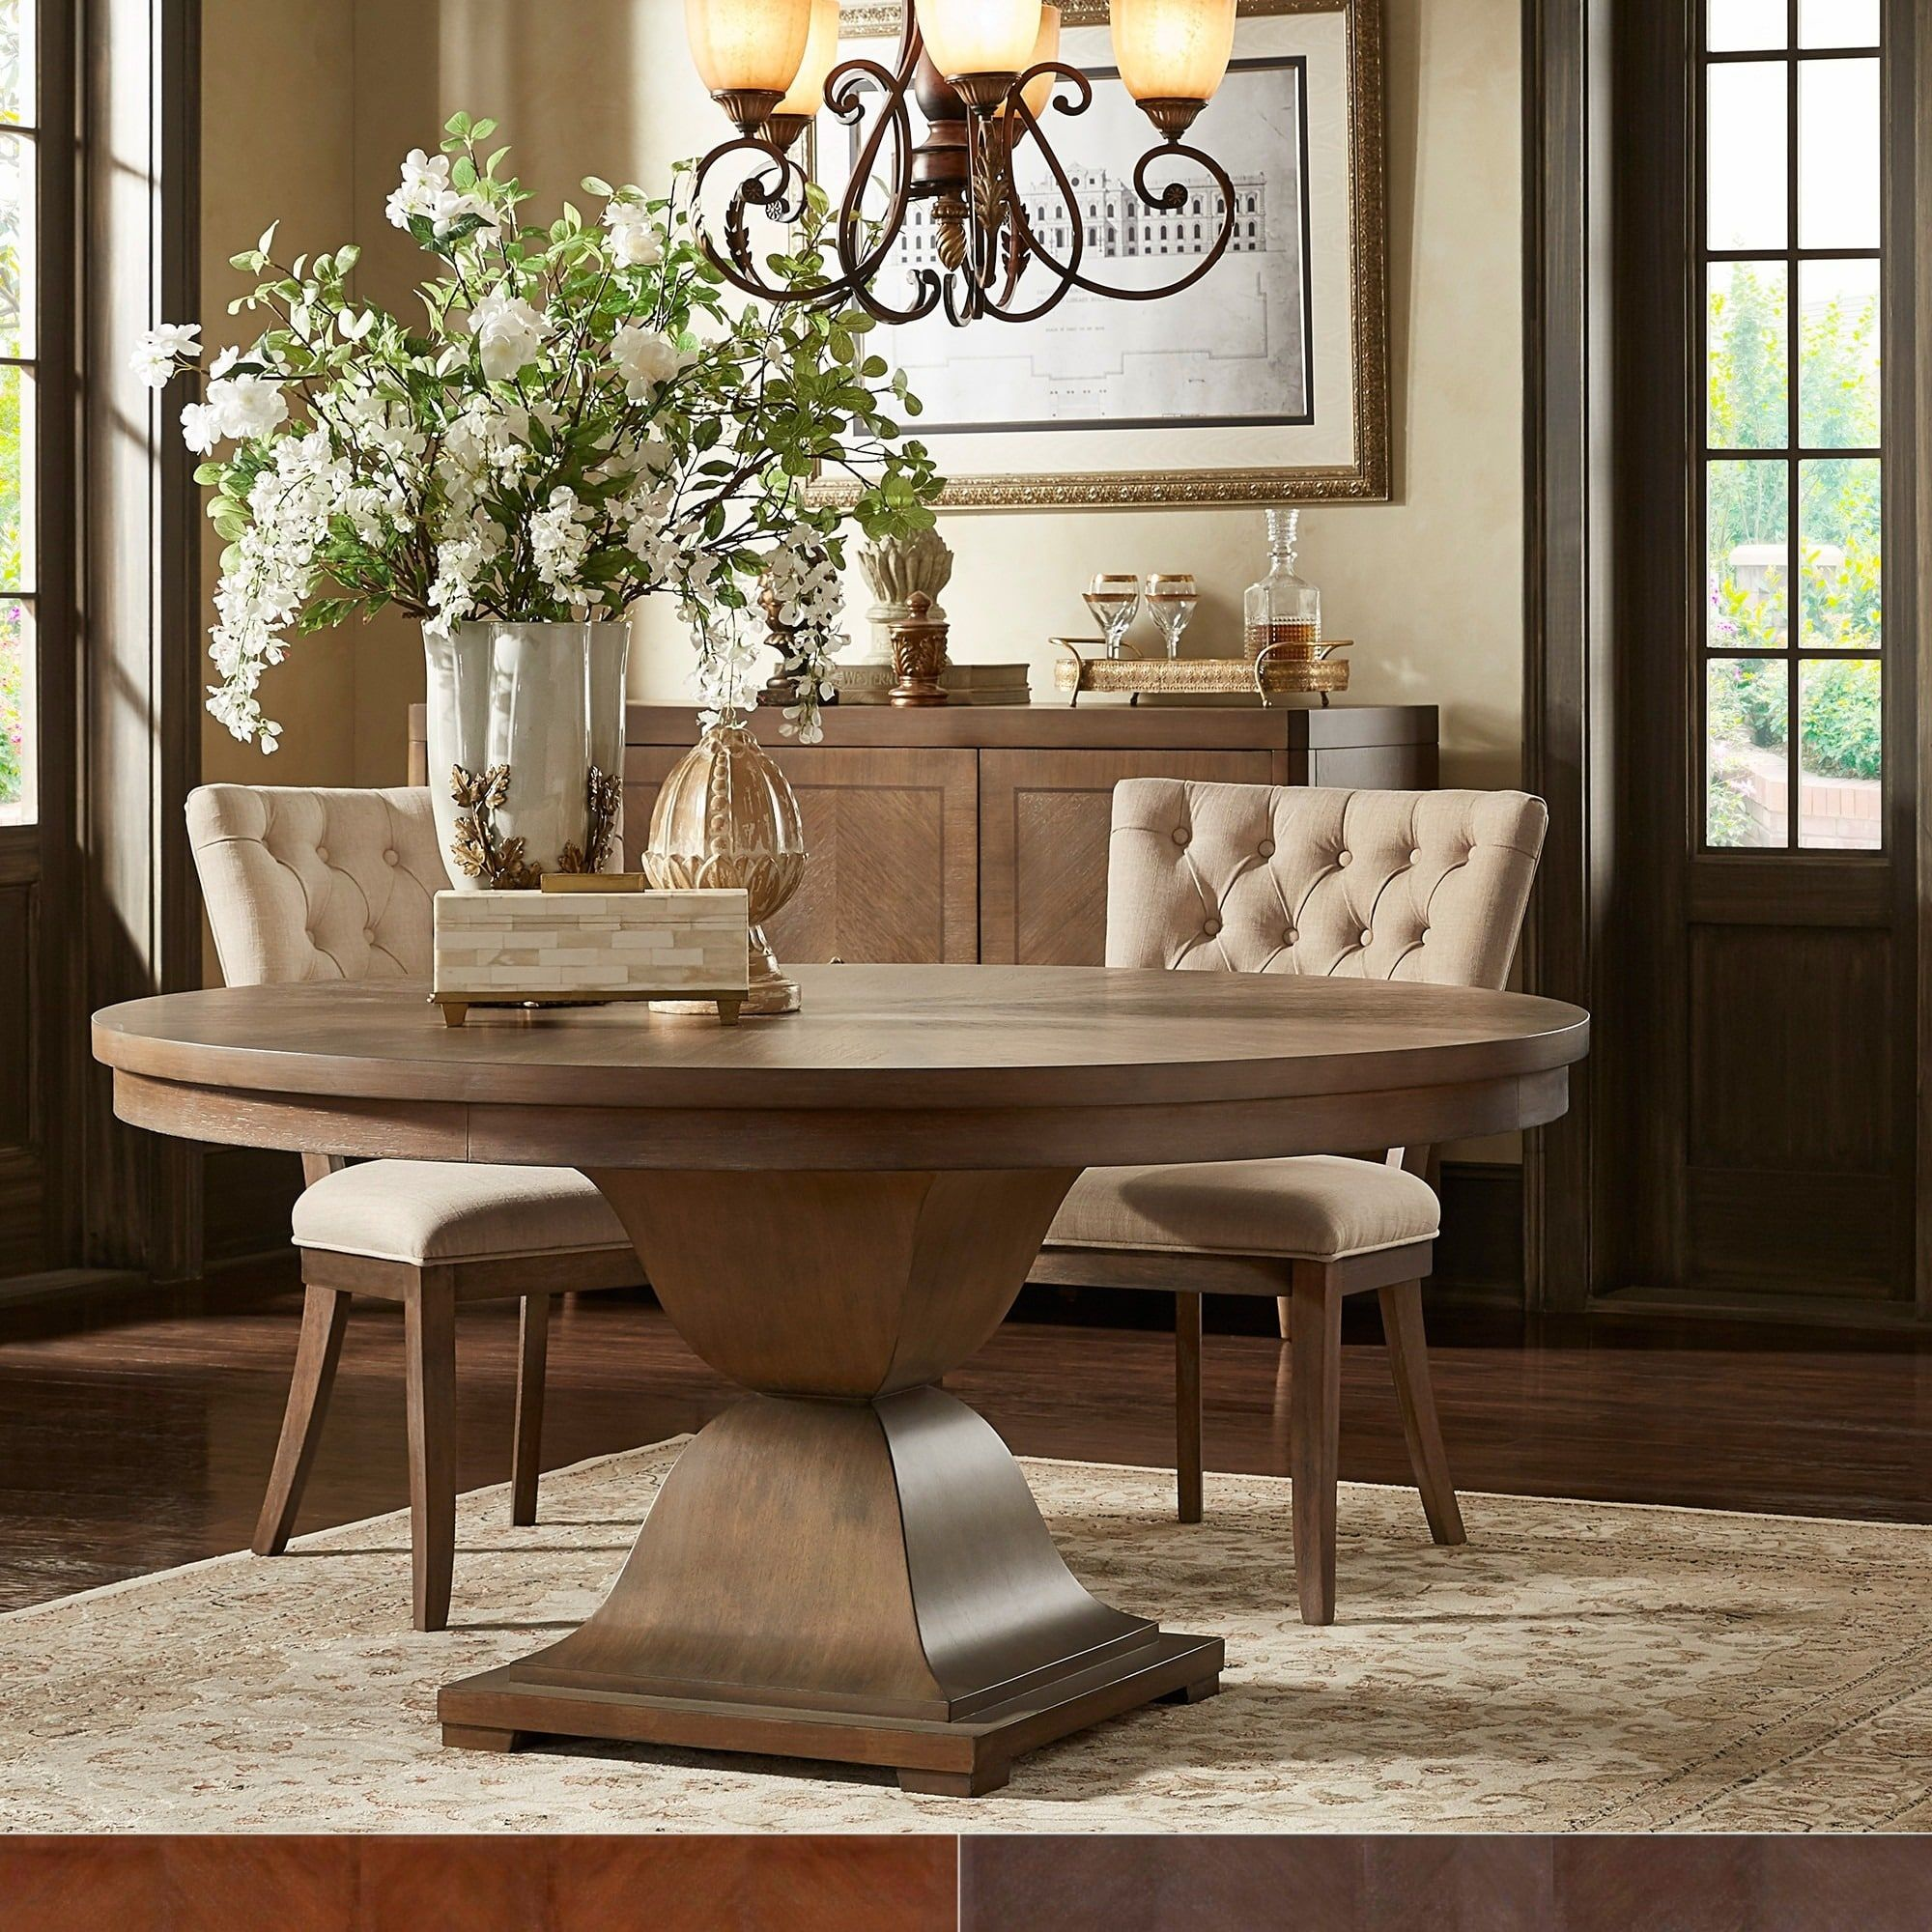 Our Best Dining Room Bar Furniture Deals Round Dining Room Round Dining Room Table Round Wood Dining Table